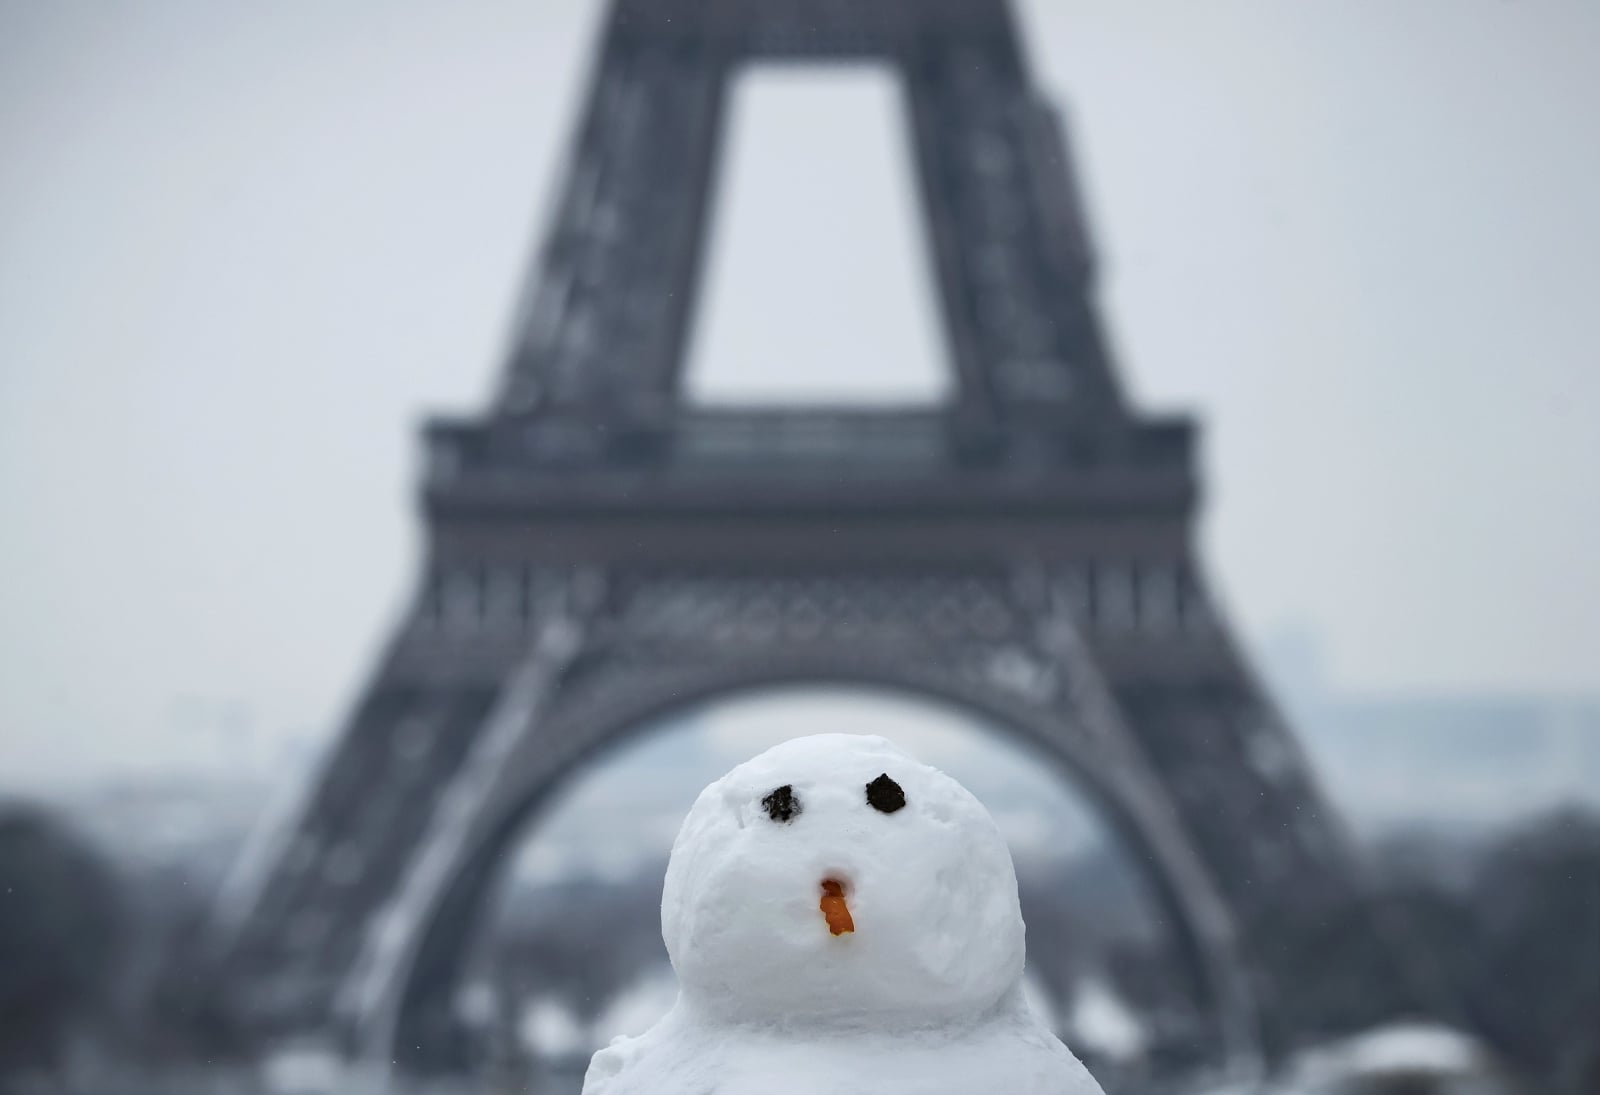 epa06502921 A snowman seen near the Eiffel Tower, in Paris, France, 07 February 2018. Temperatures dropped with snow flurries around the capital.  EPA/IAN LANGSDON Dostawca: PAP/EPA.